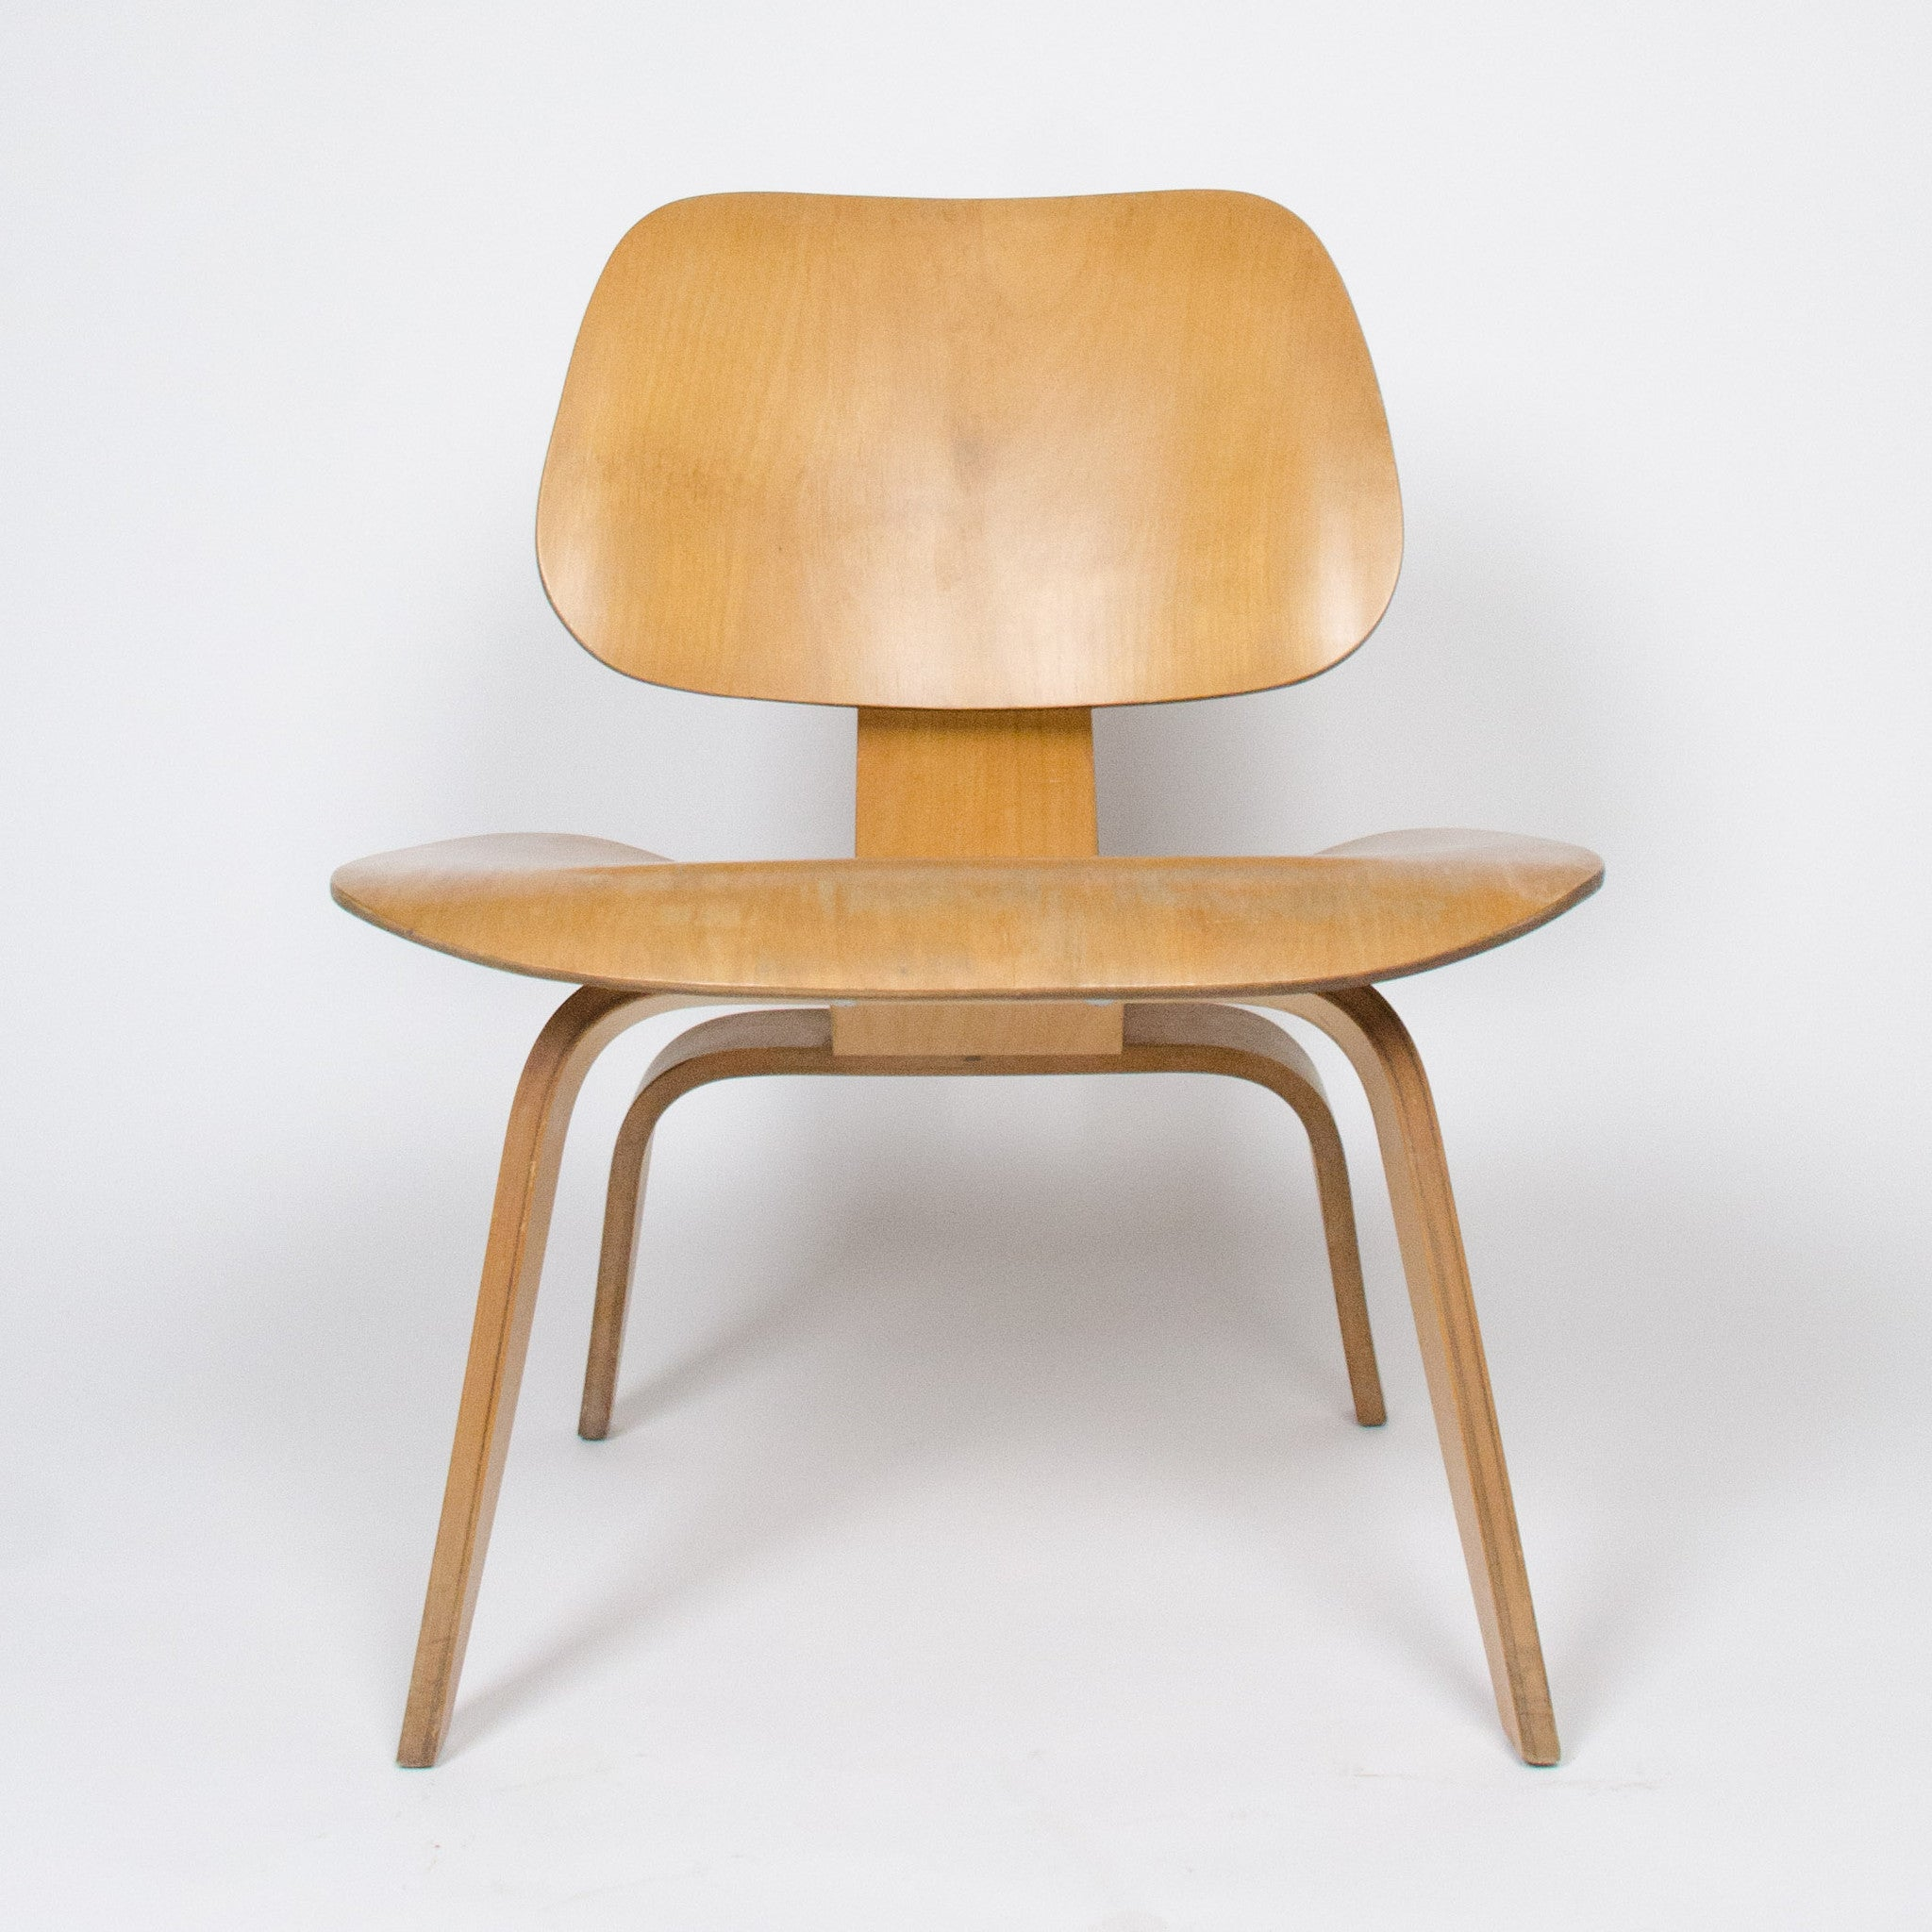 SOLD Eames Herman Miller 1951 LCW Plywood Lounge Chair Original Calico Ash Mint!